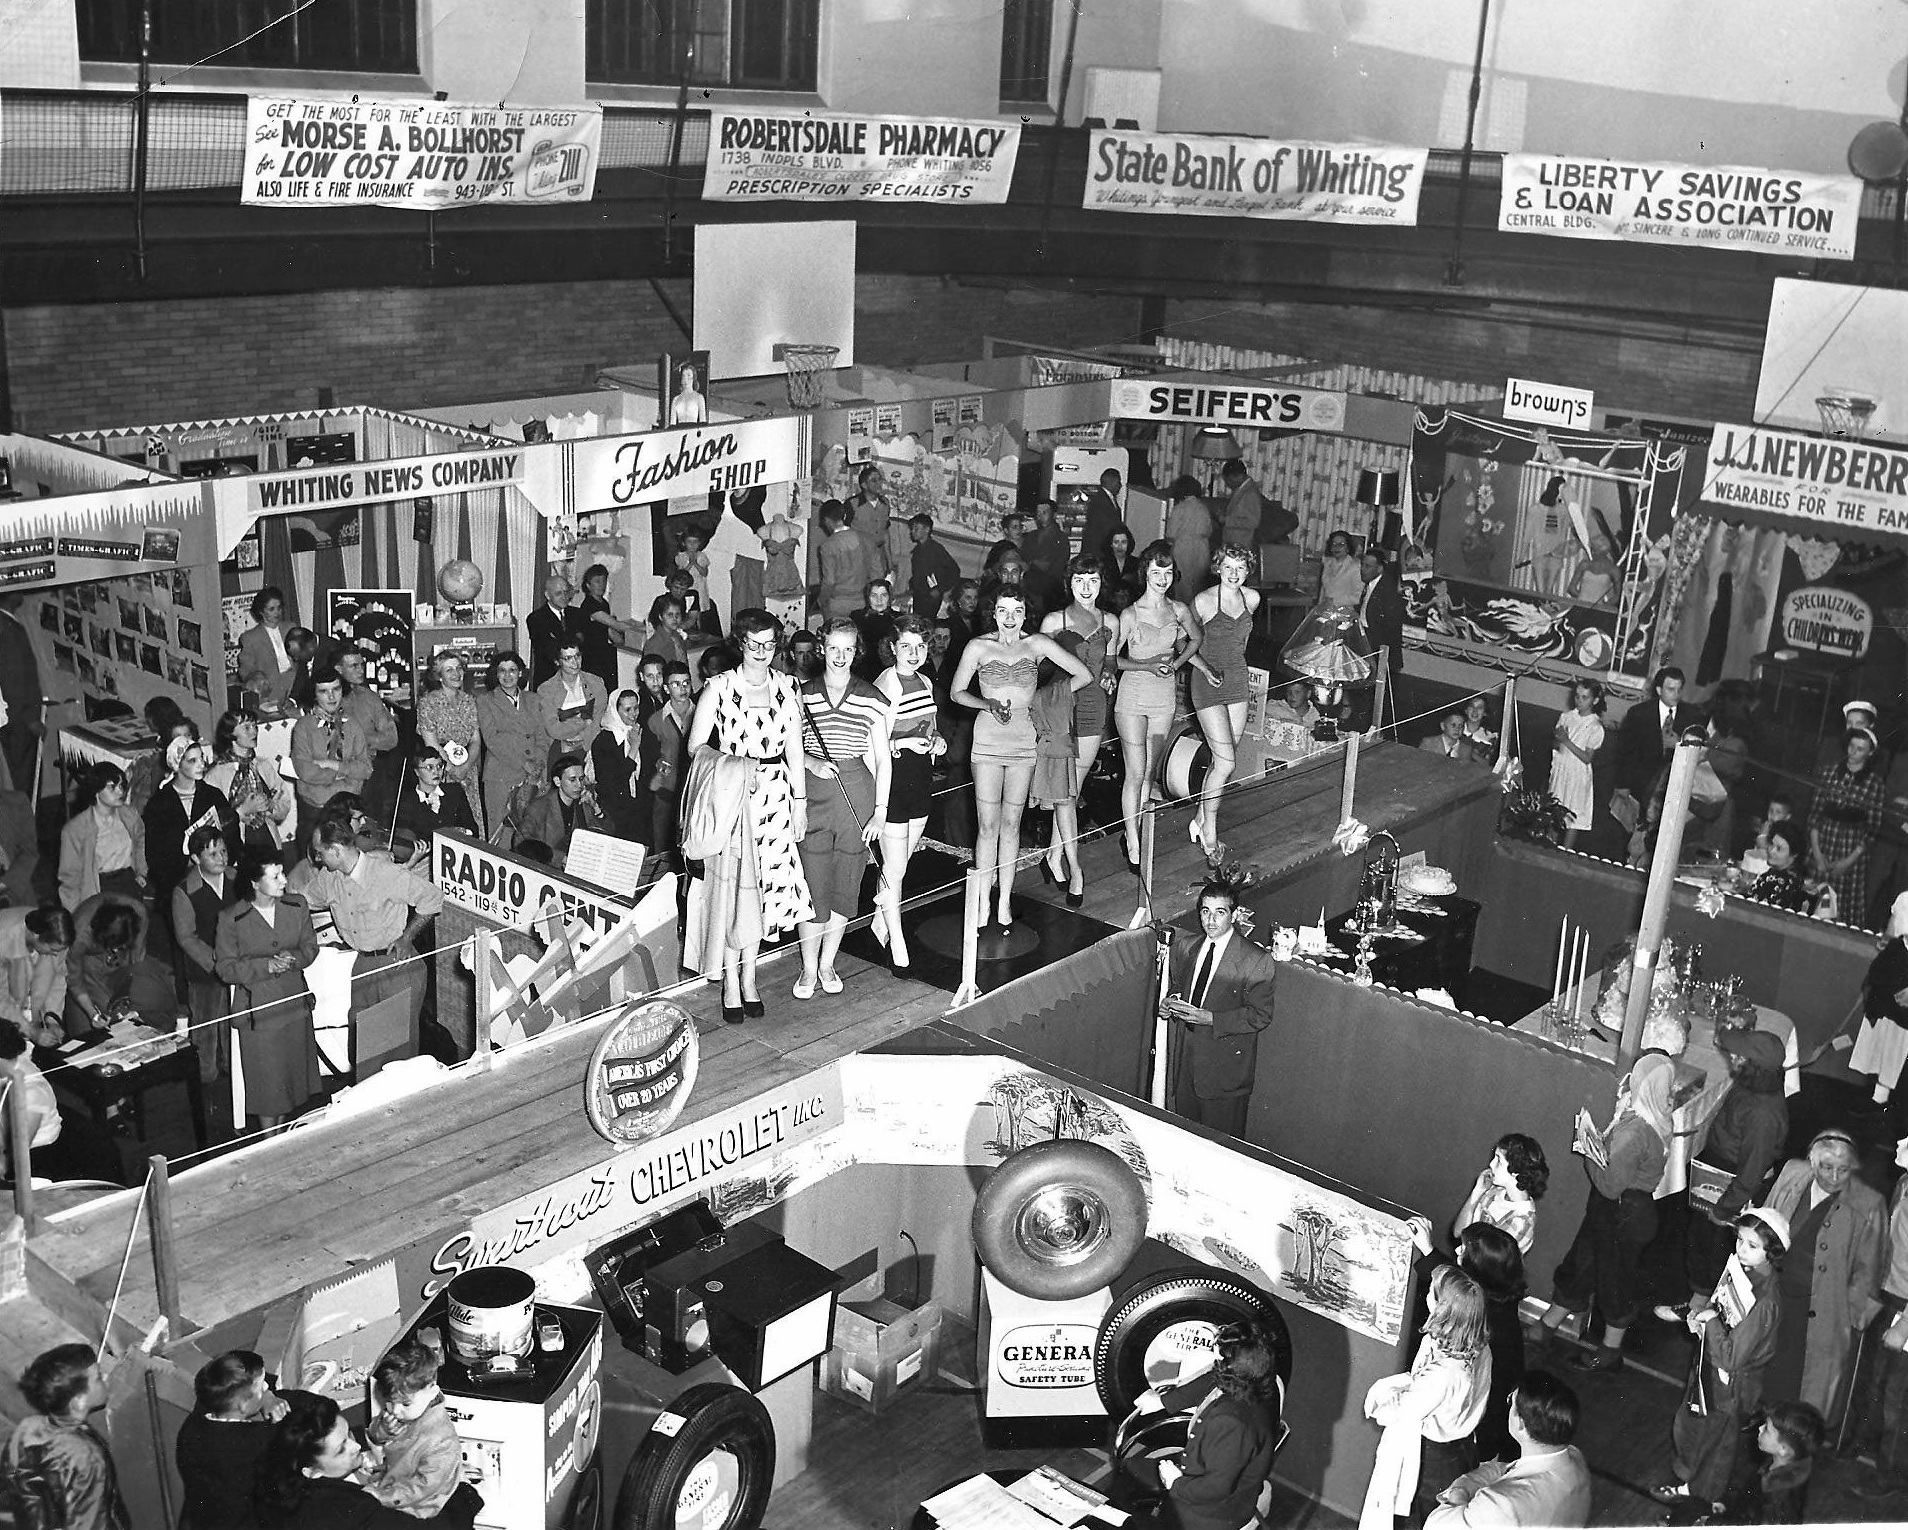 In 1957, the Whiting Community Center hosted the Merchants and Industrial Exposition. There were fashion shows and other performances, as well as displays by area merchants, both those with shops on 119th Street and other parts of Whiting-Robertsdale. (Elsie Boness photograph)